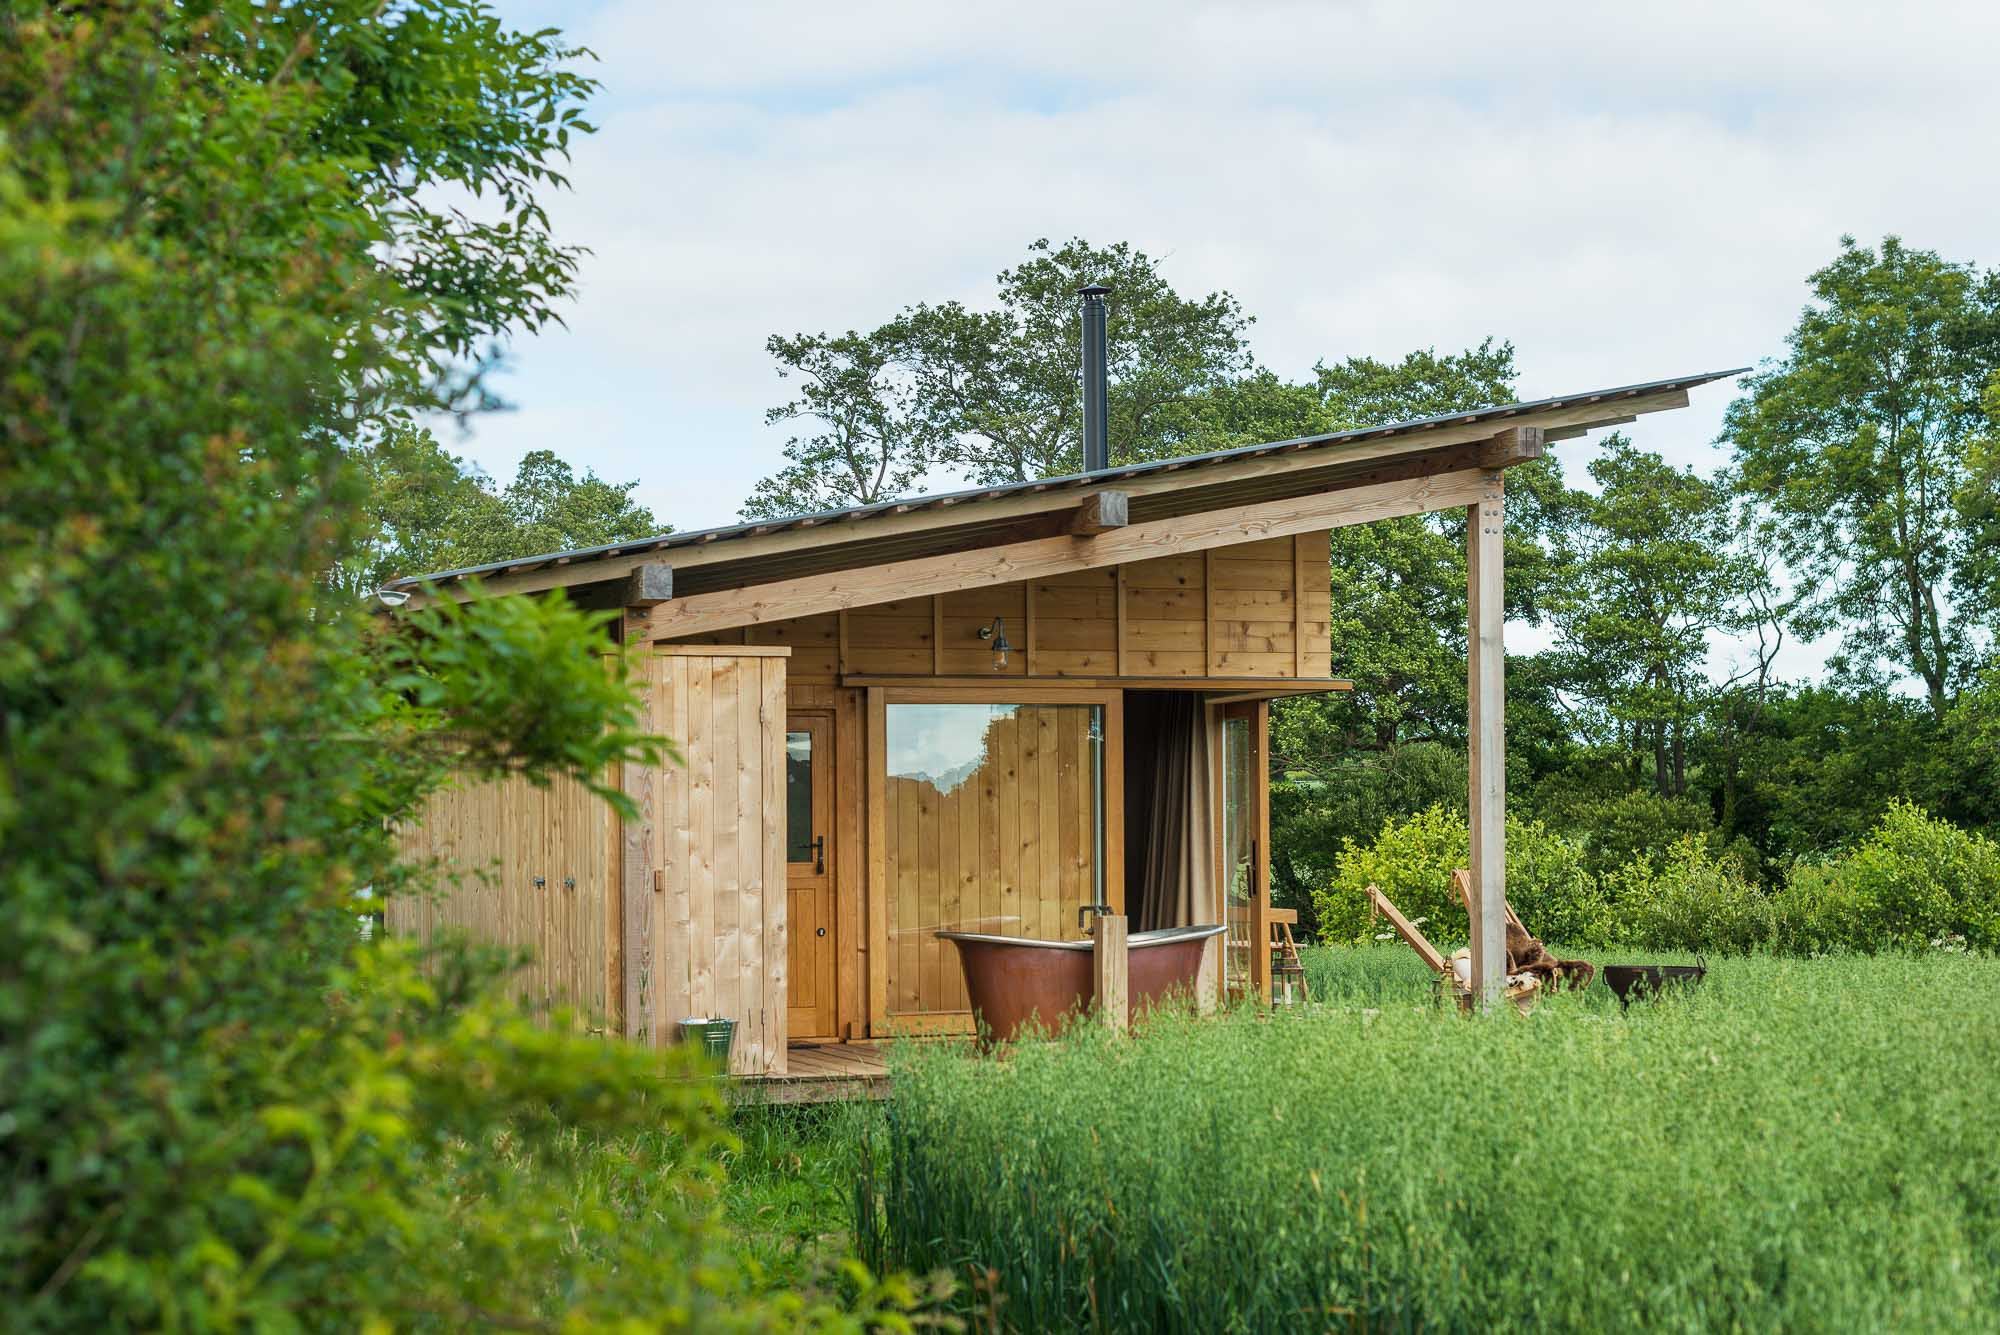 off-grid bespoke cedar cabin with covered veranda, outdoor copper bath in the natural landscape